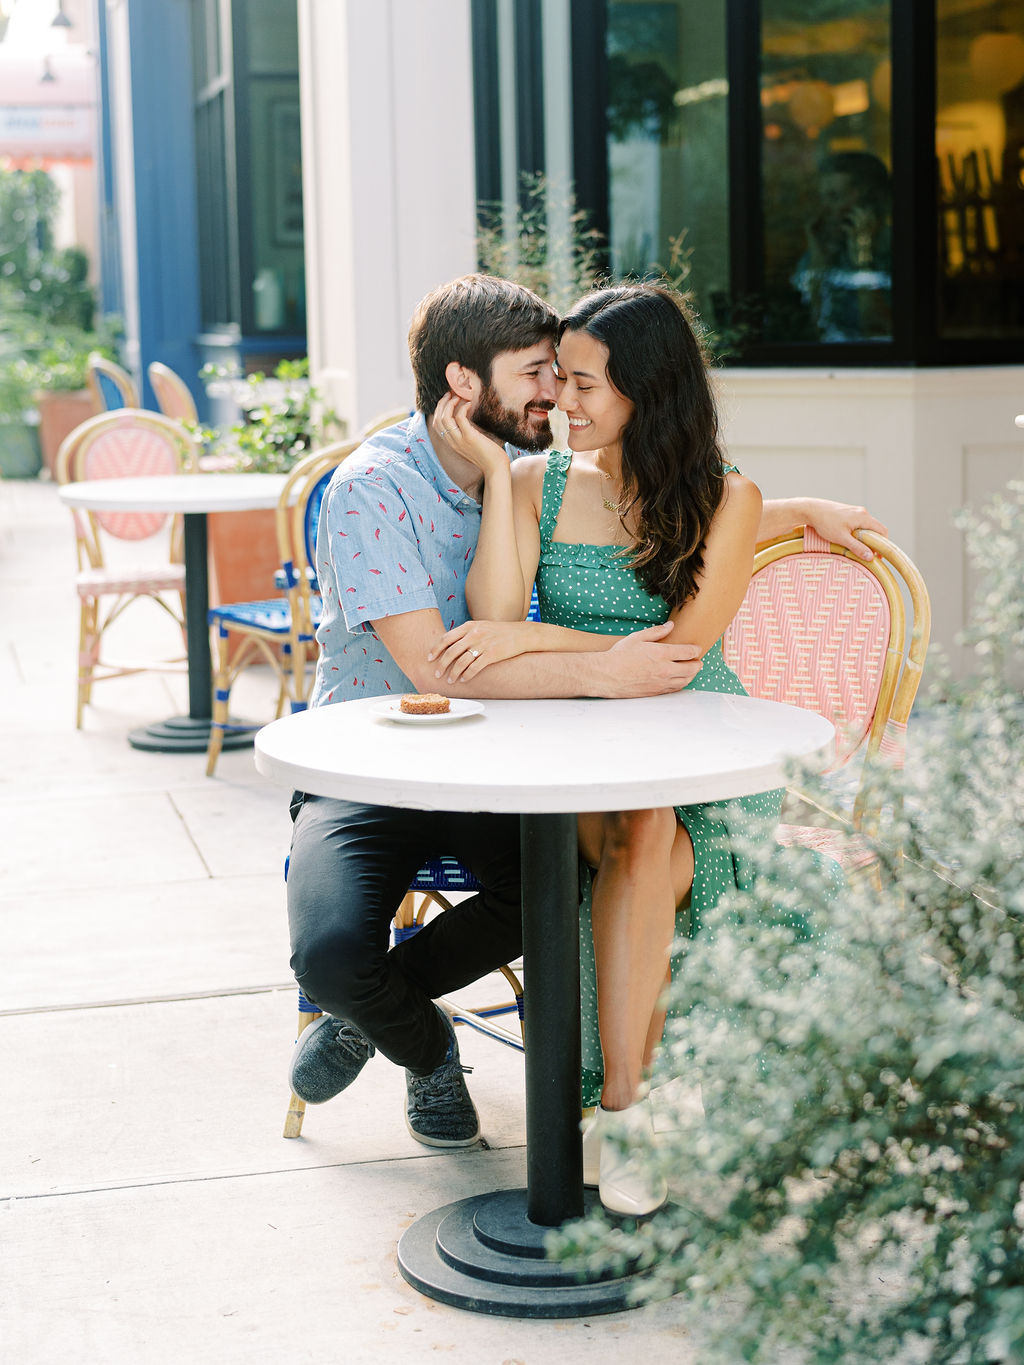 Austin-Intimate-Wedding-Elopement-Photograper-Film-Downtown-Engagement-Session-Home-34.jpg